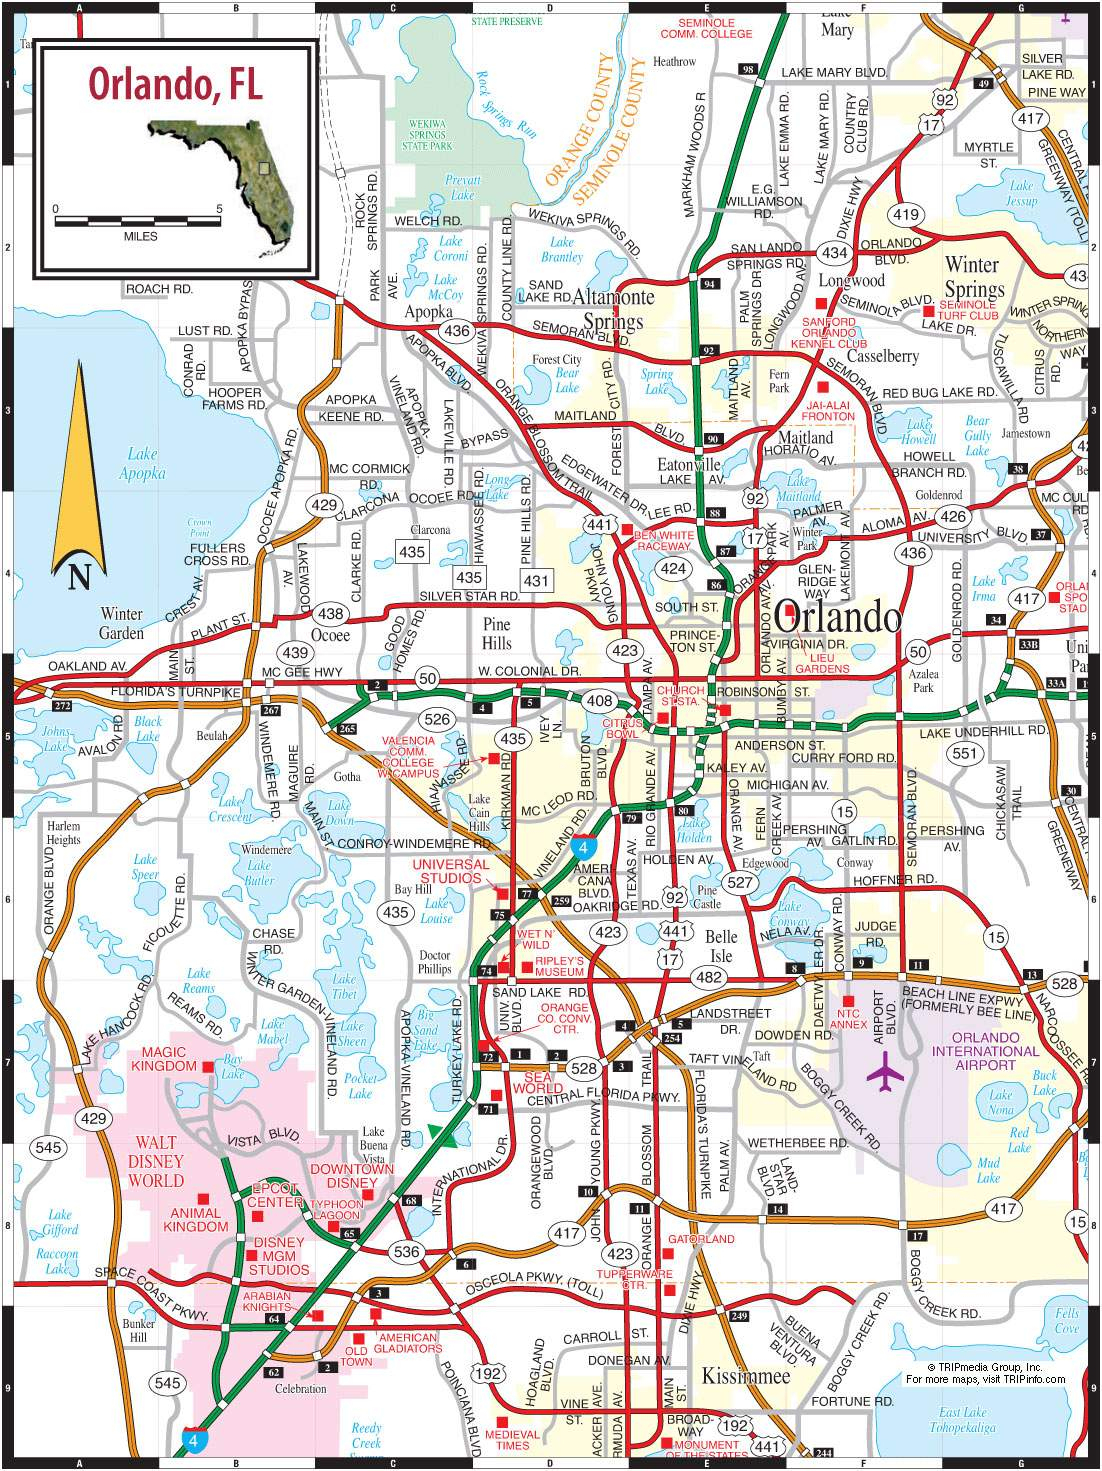 Large Orlando Maps For Free Download And Print | High-Resolution And - Road Map Of Central Florida